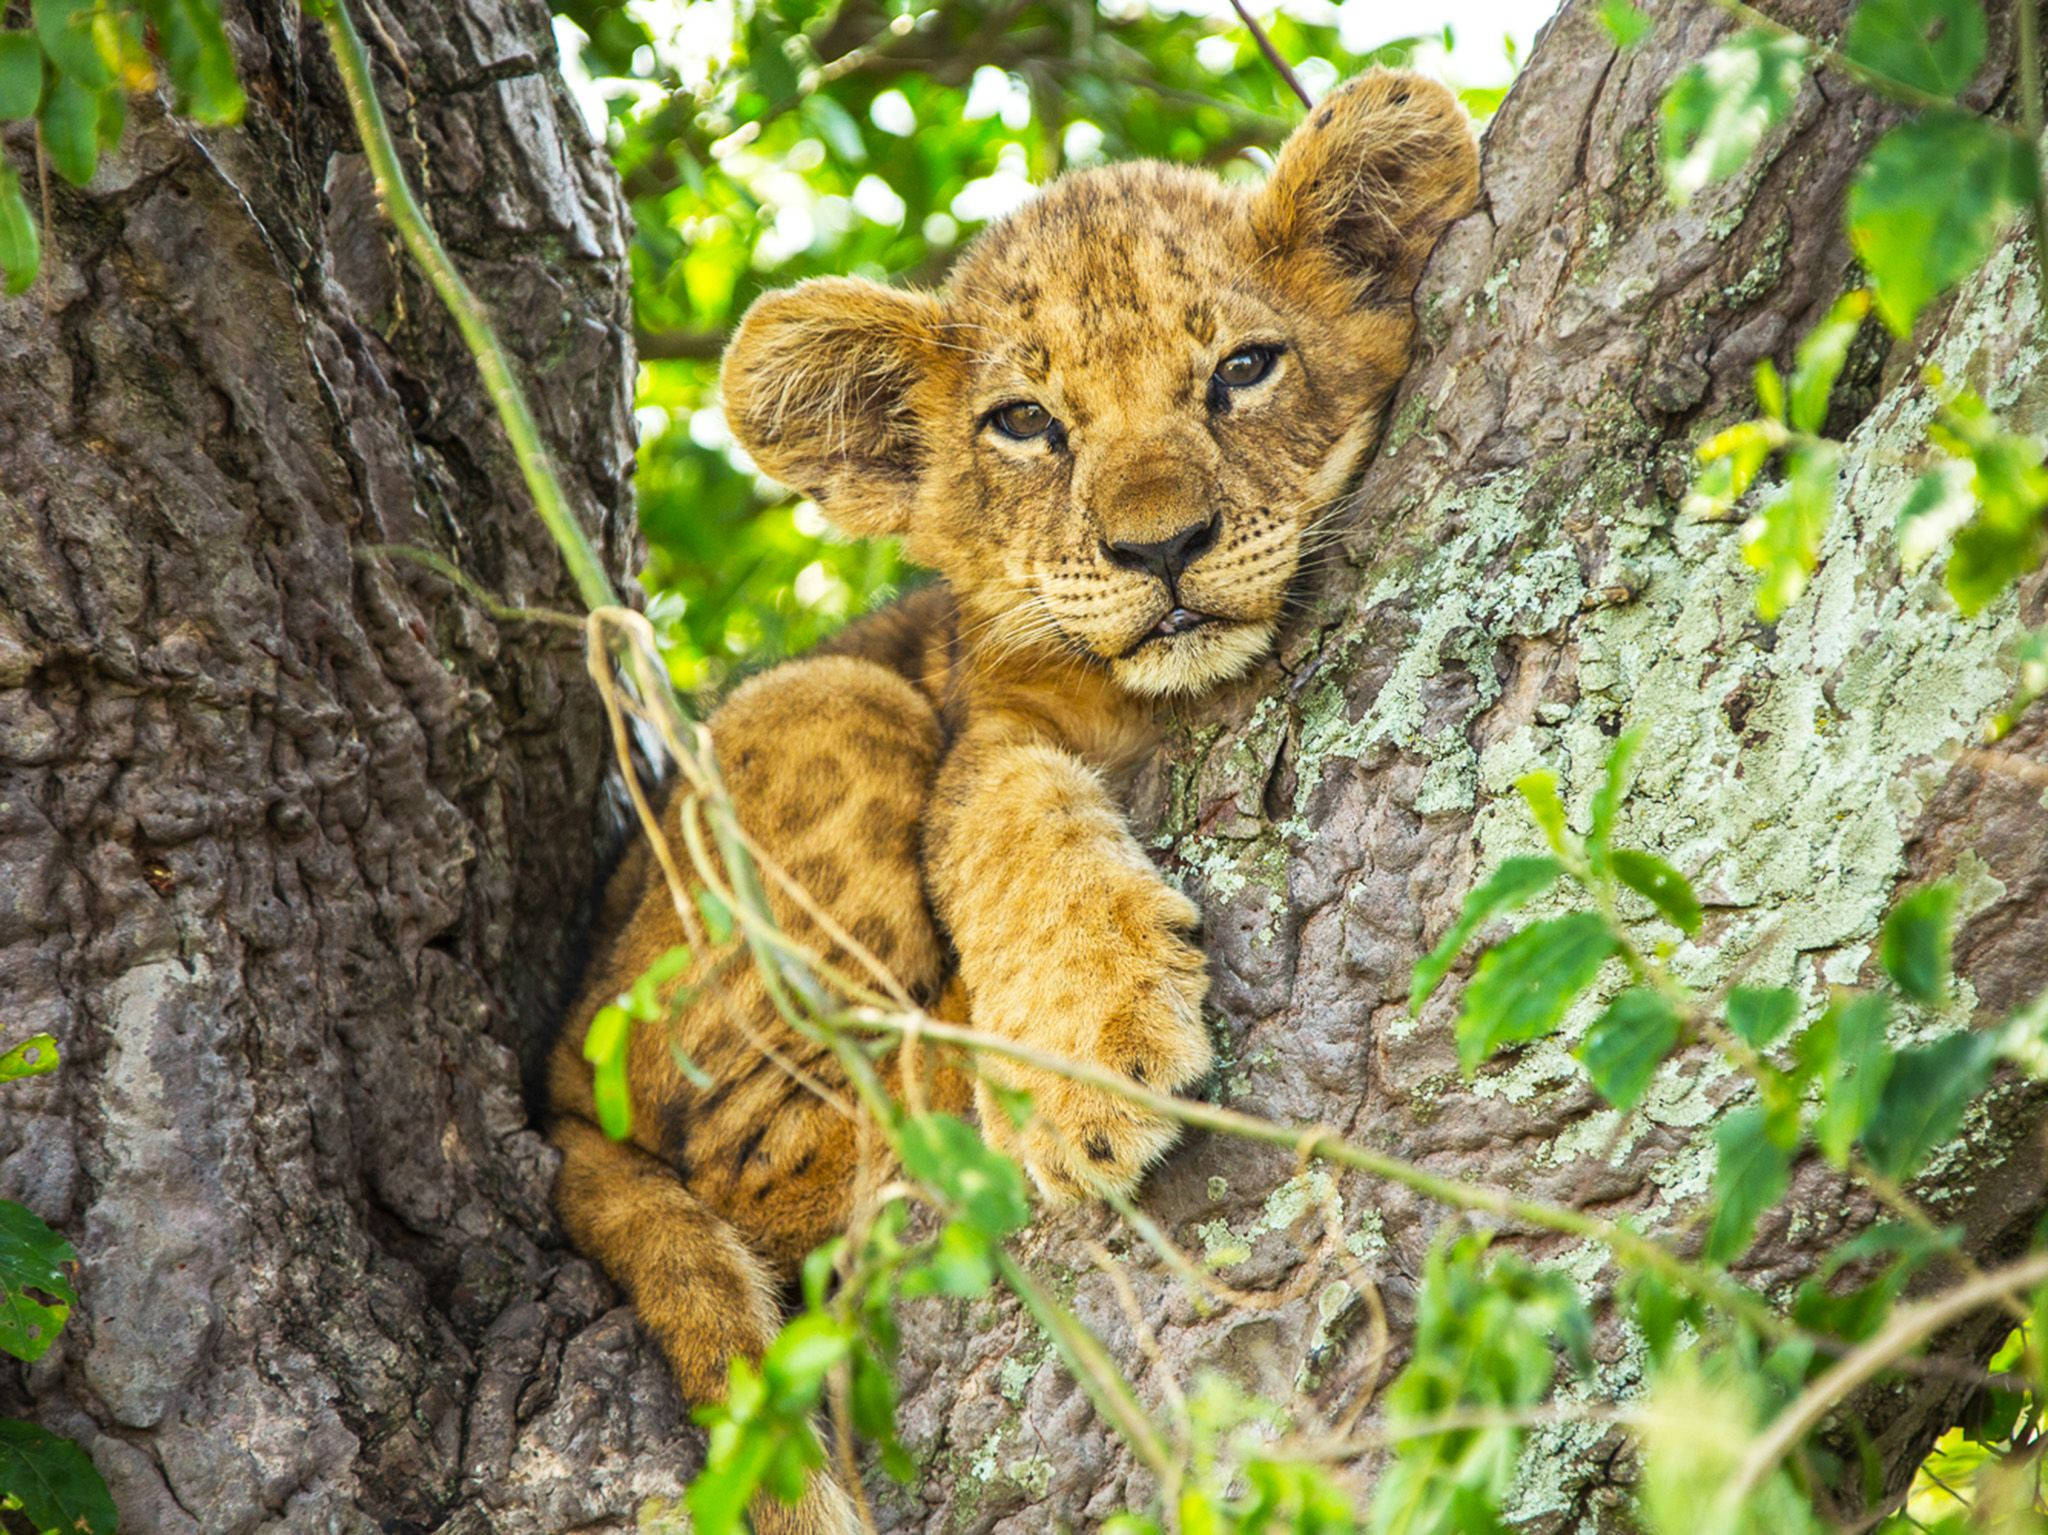 Queen Elizabeth National Park, Uganda:  A young lion cub nestled in fork of tree. This image is... [Photo of the day - November 2018]